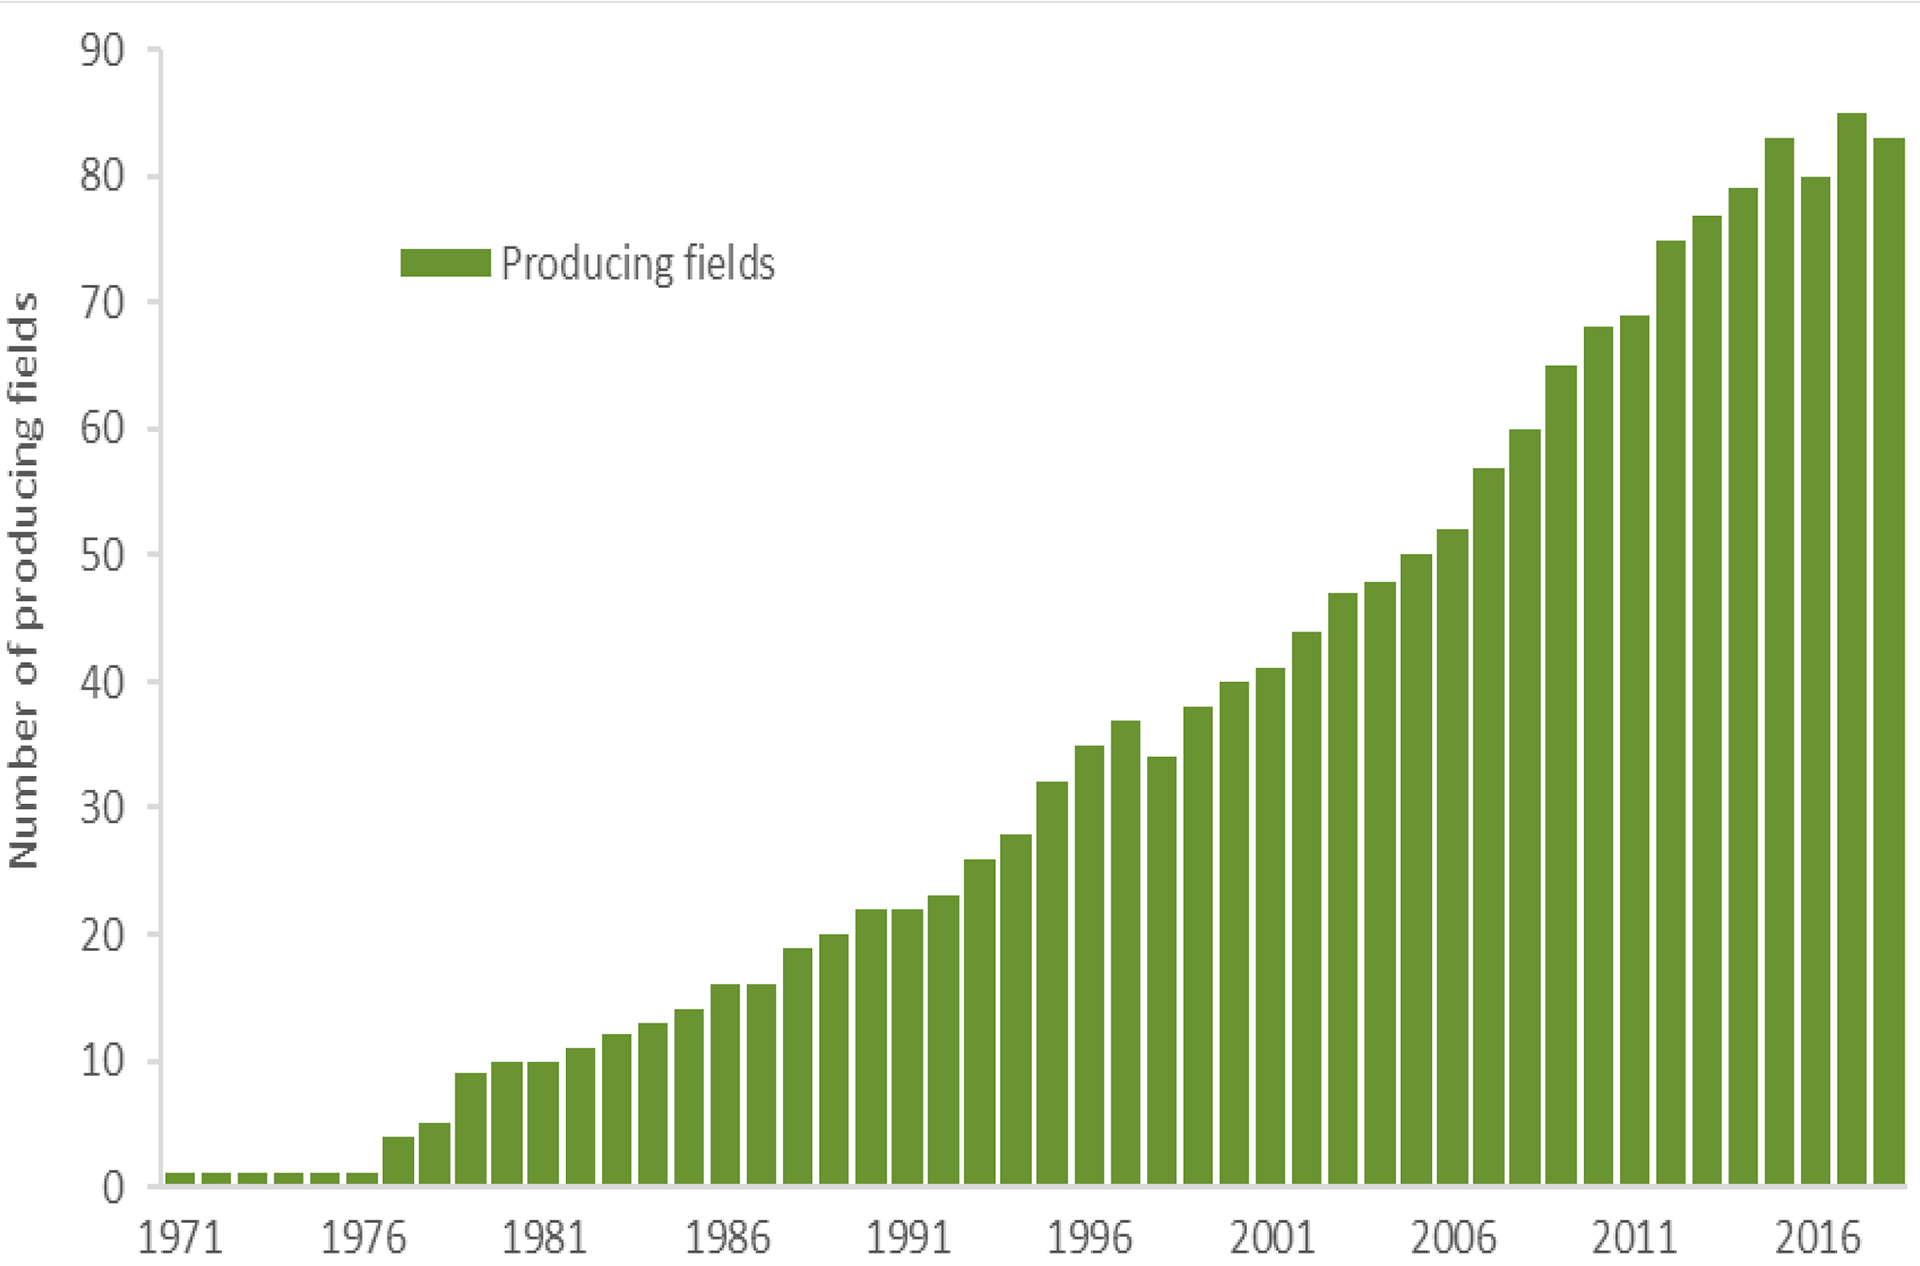 Figure 3-1 Number of fields in production through the years